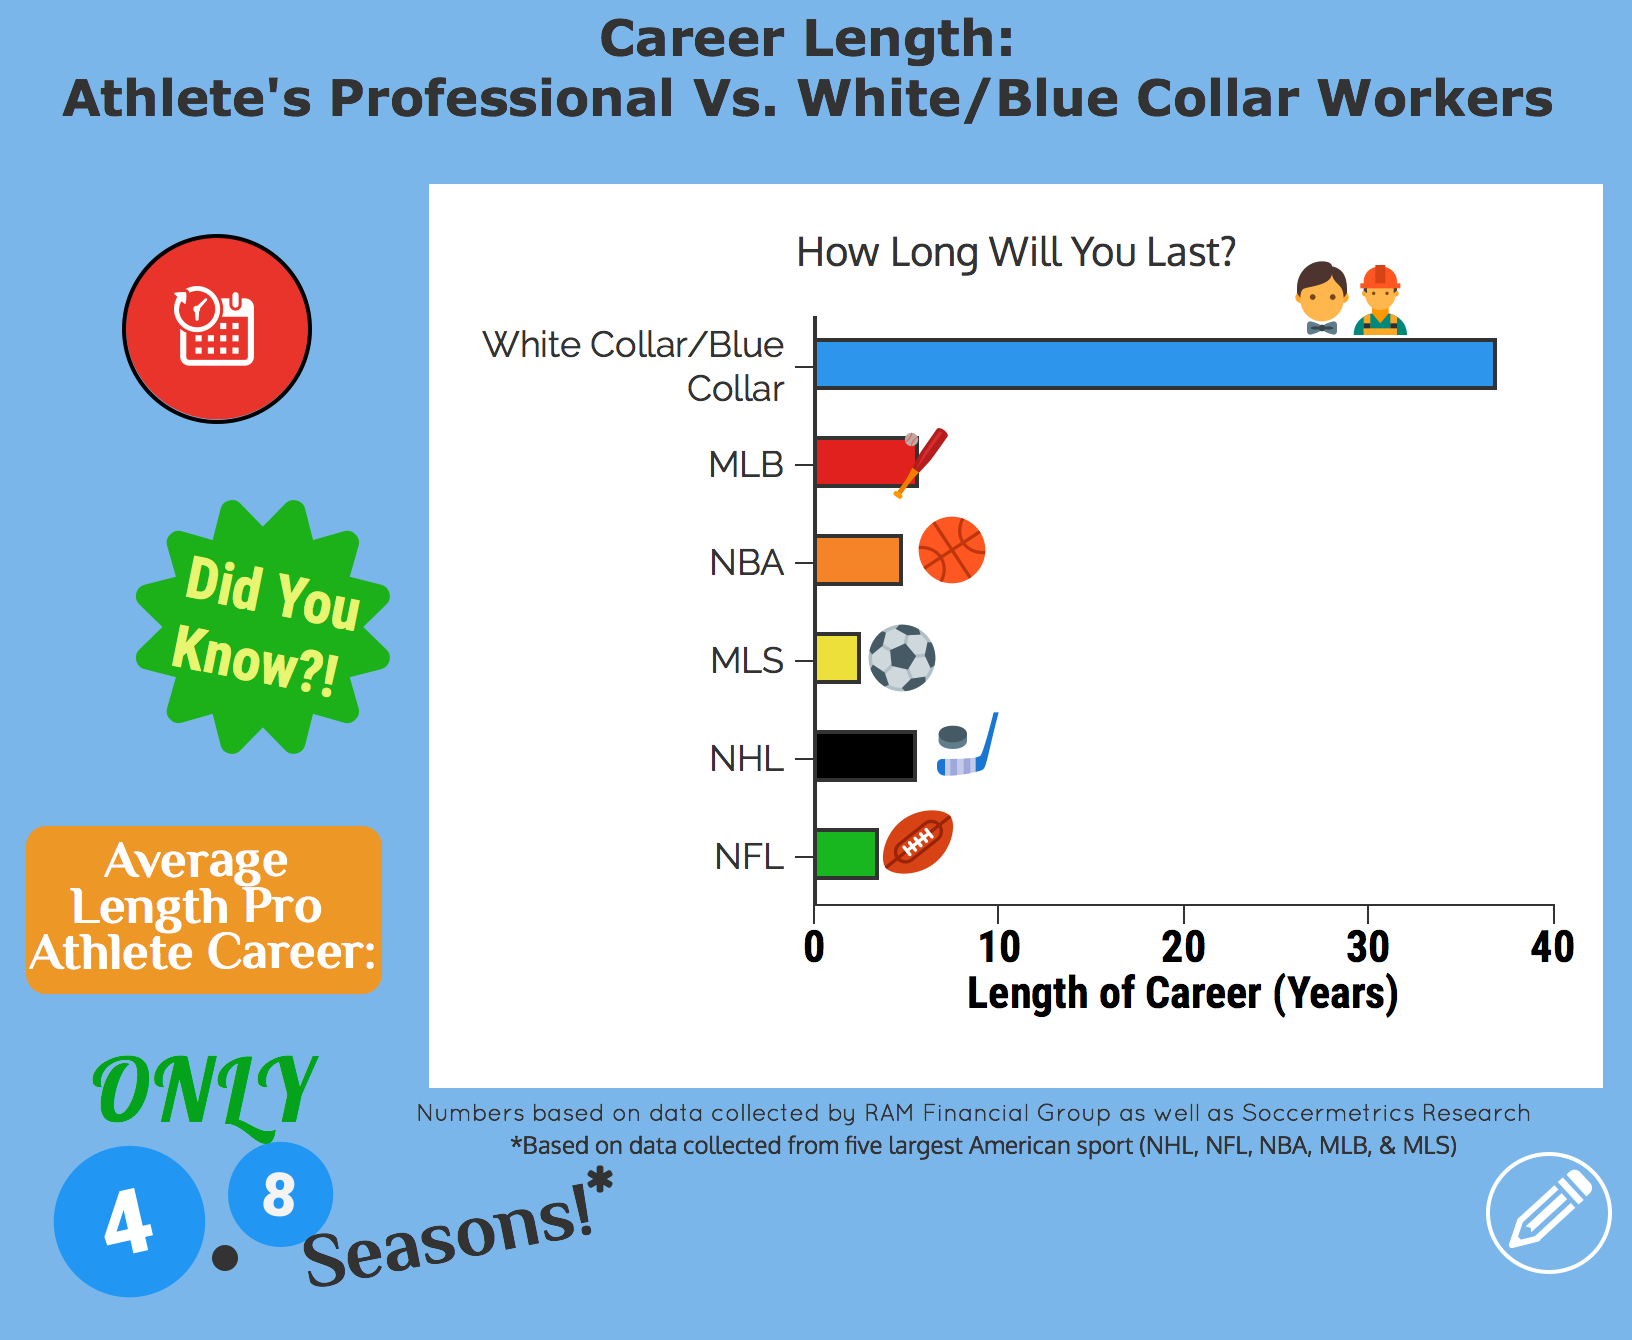 Infographic on the length of careers professional sports athletes vs. blue/white collar workers